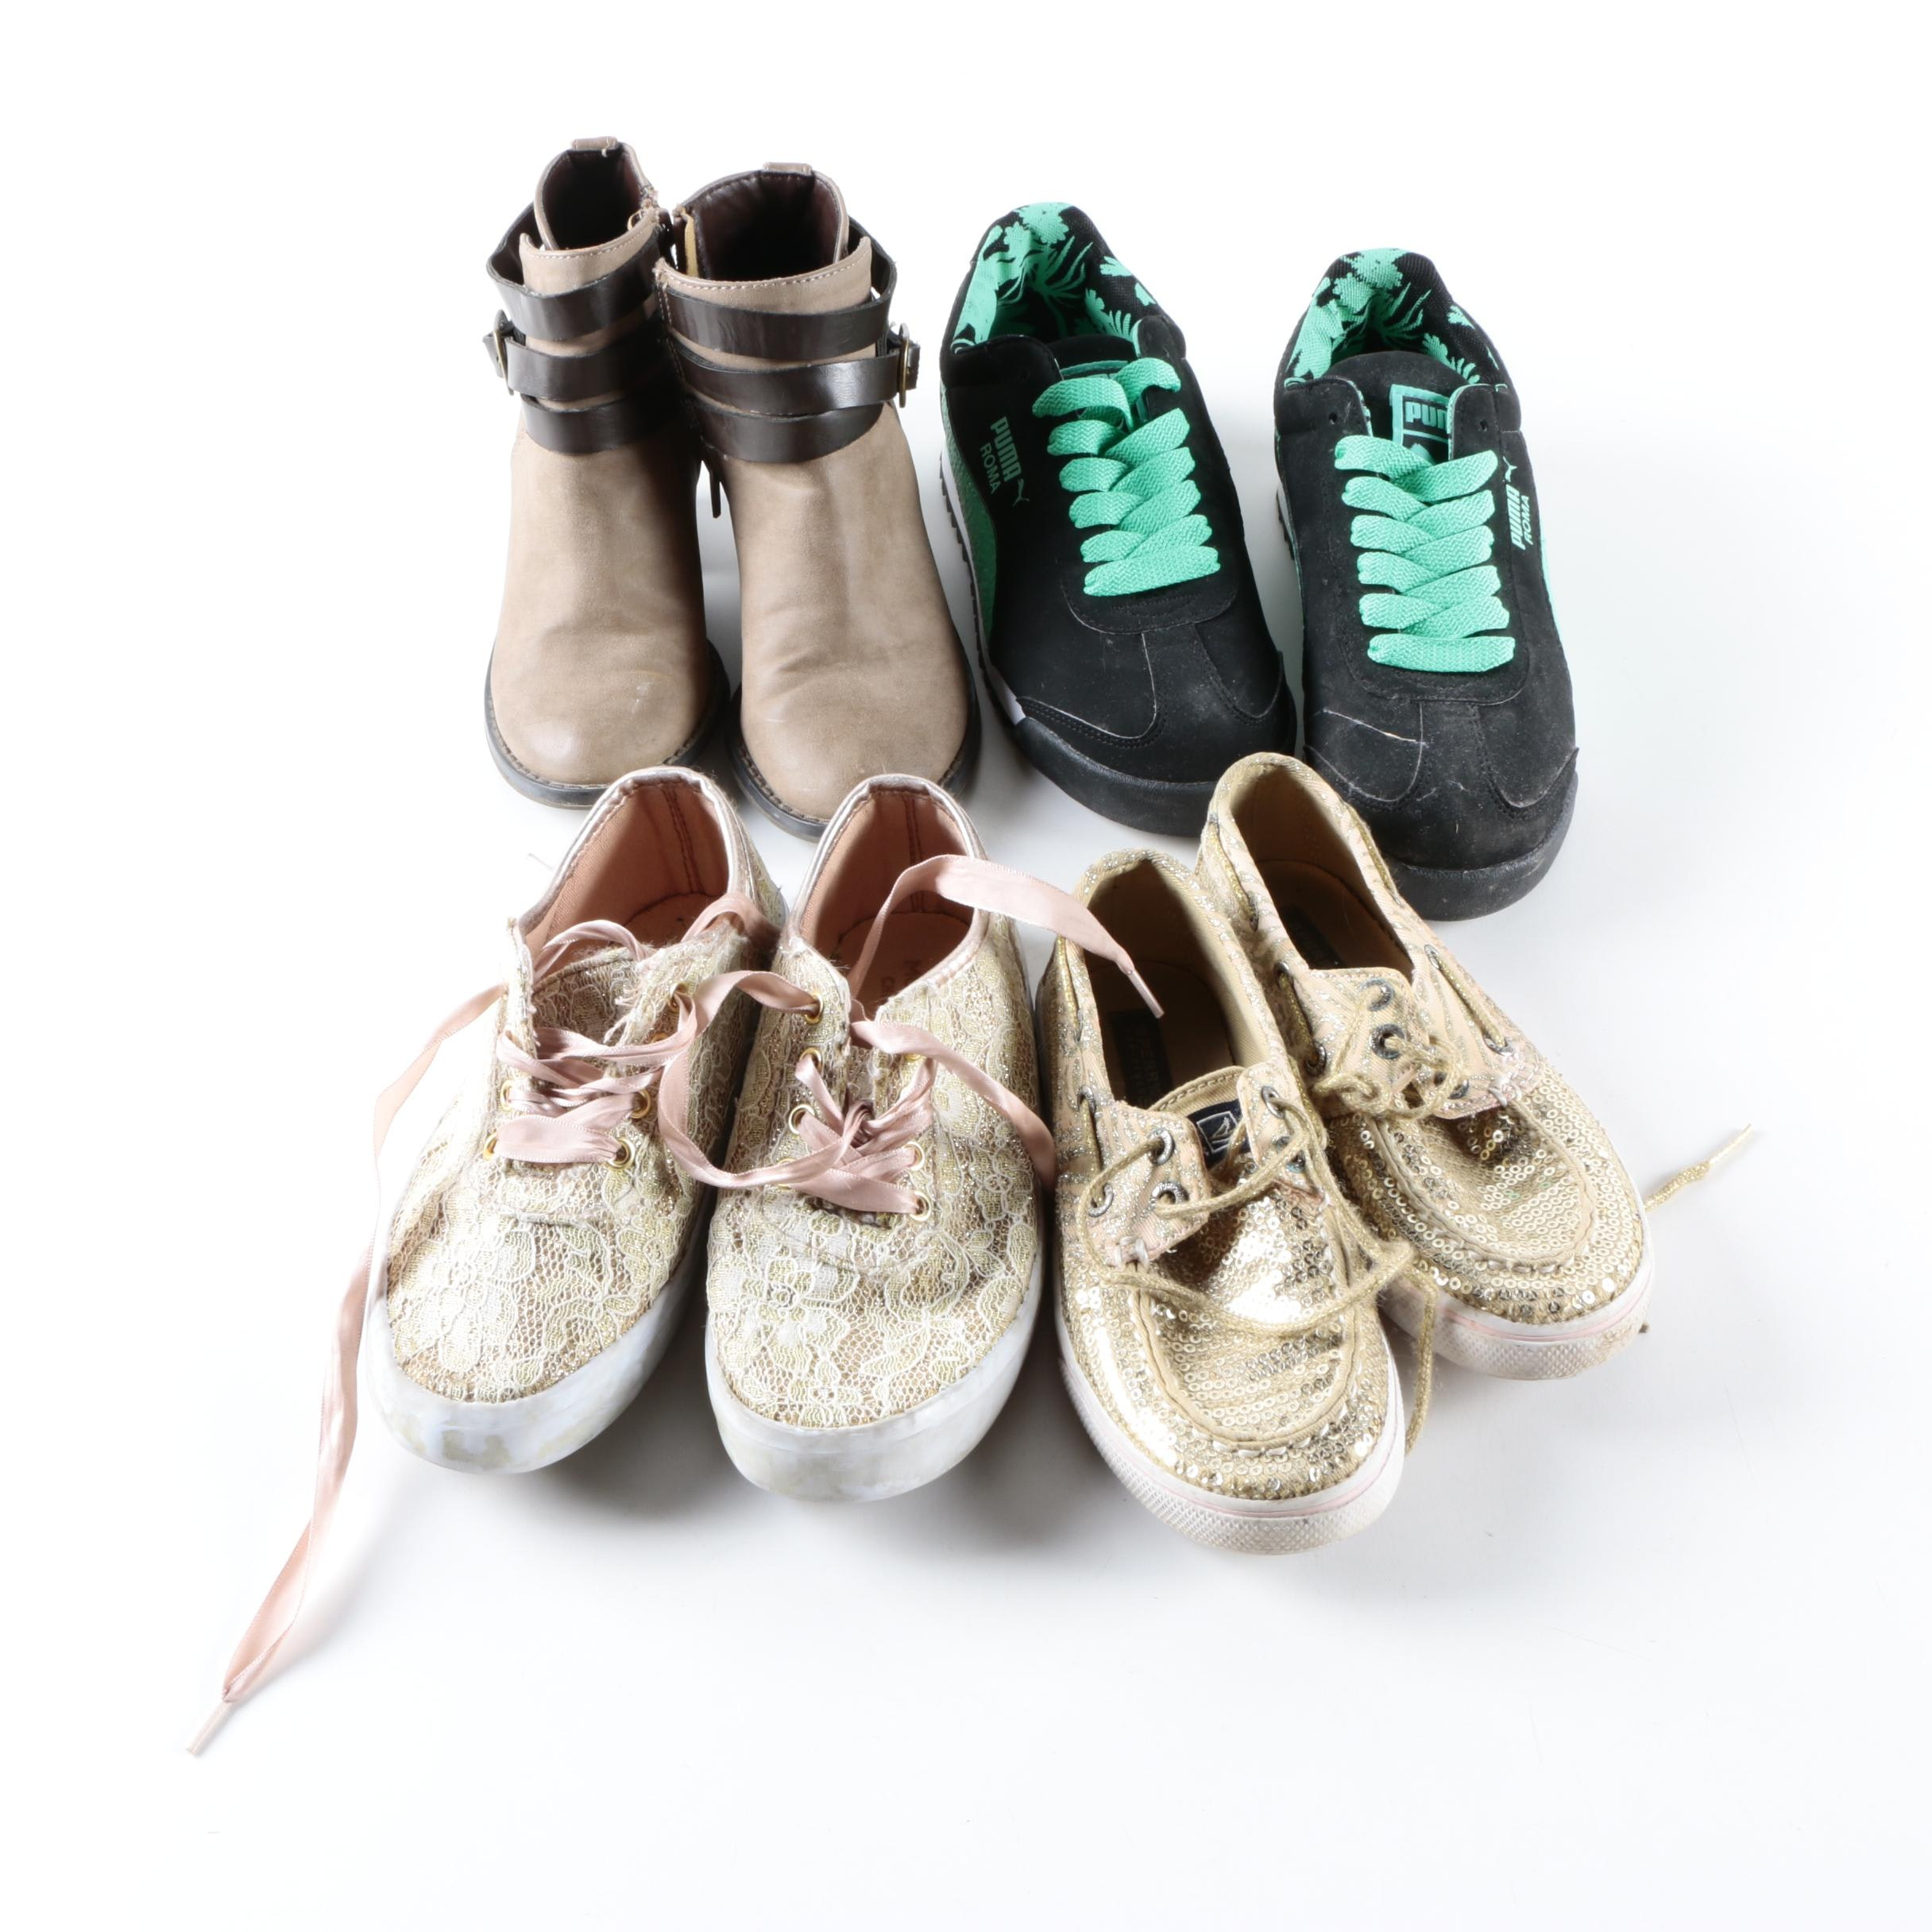 Girl's Footwear Including Puma, Sperry and Boot Heels